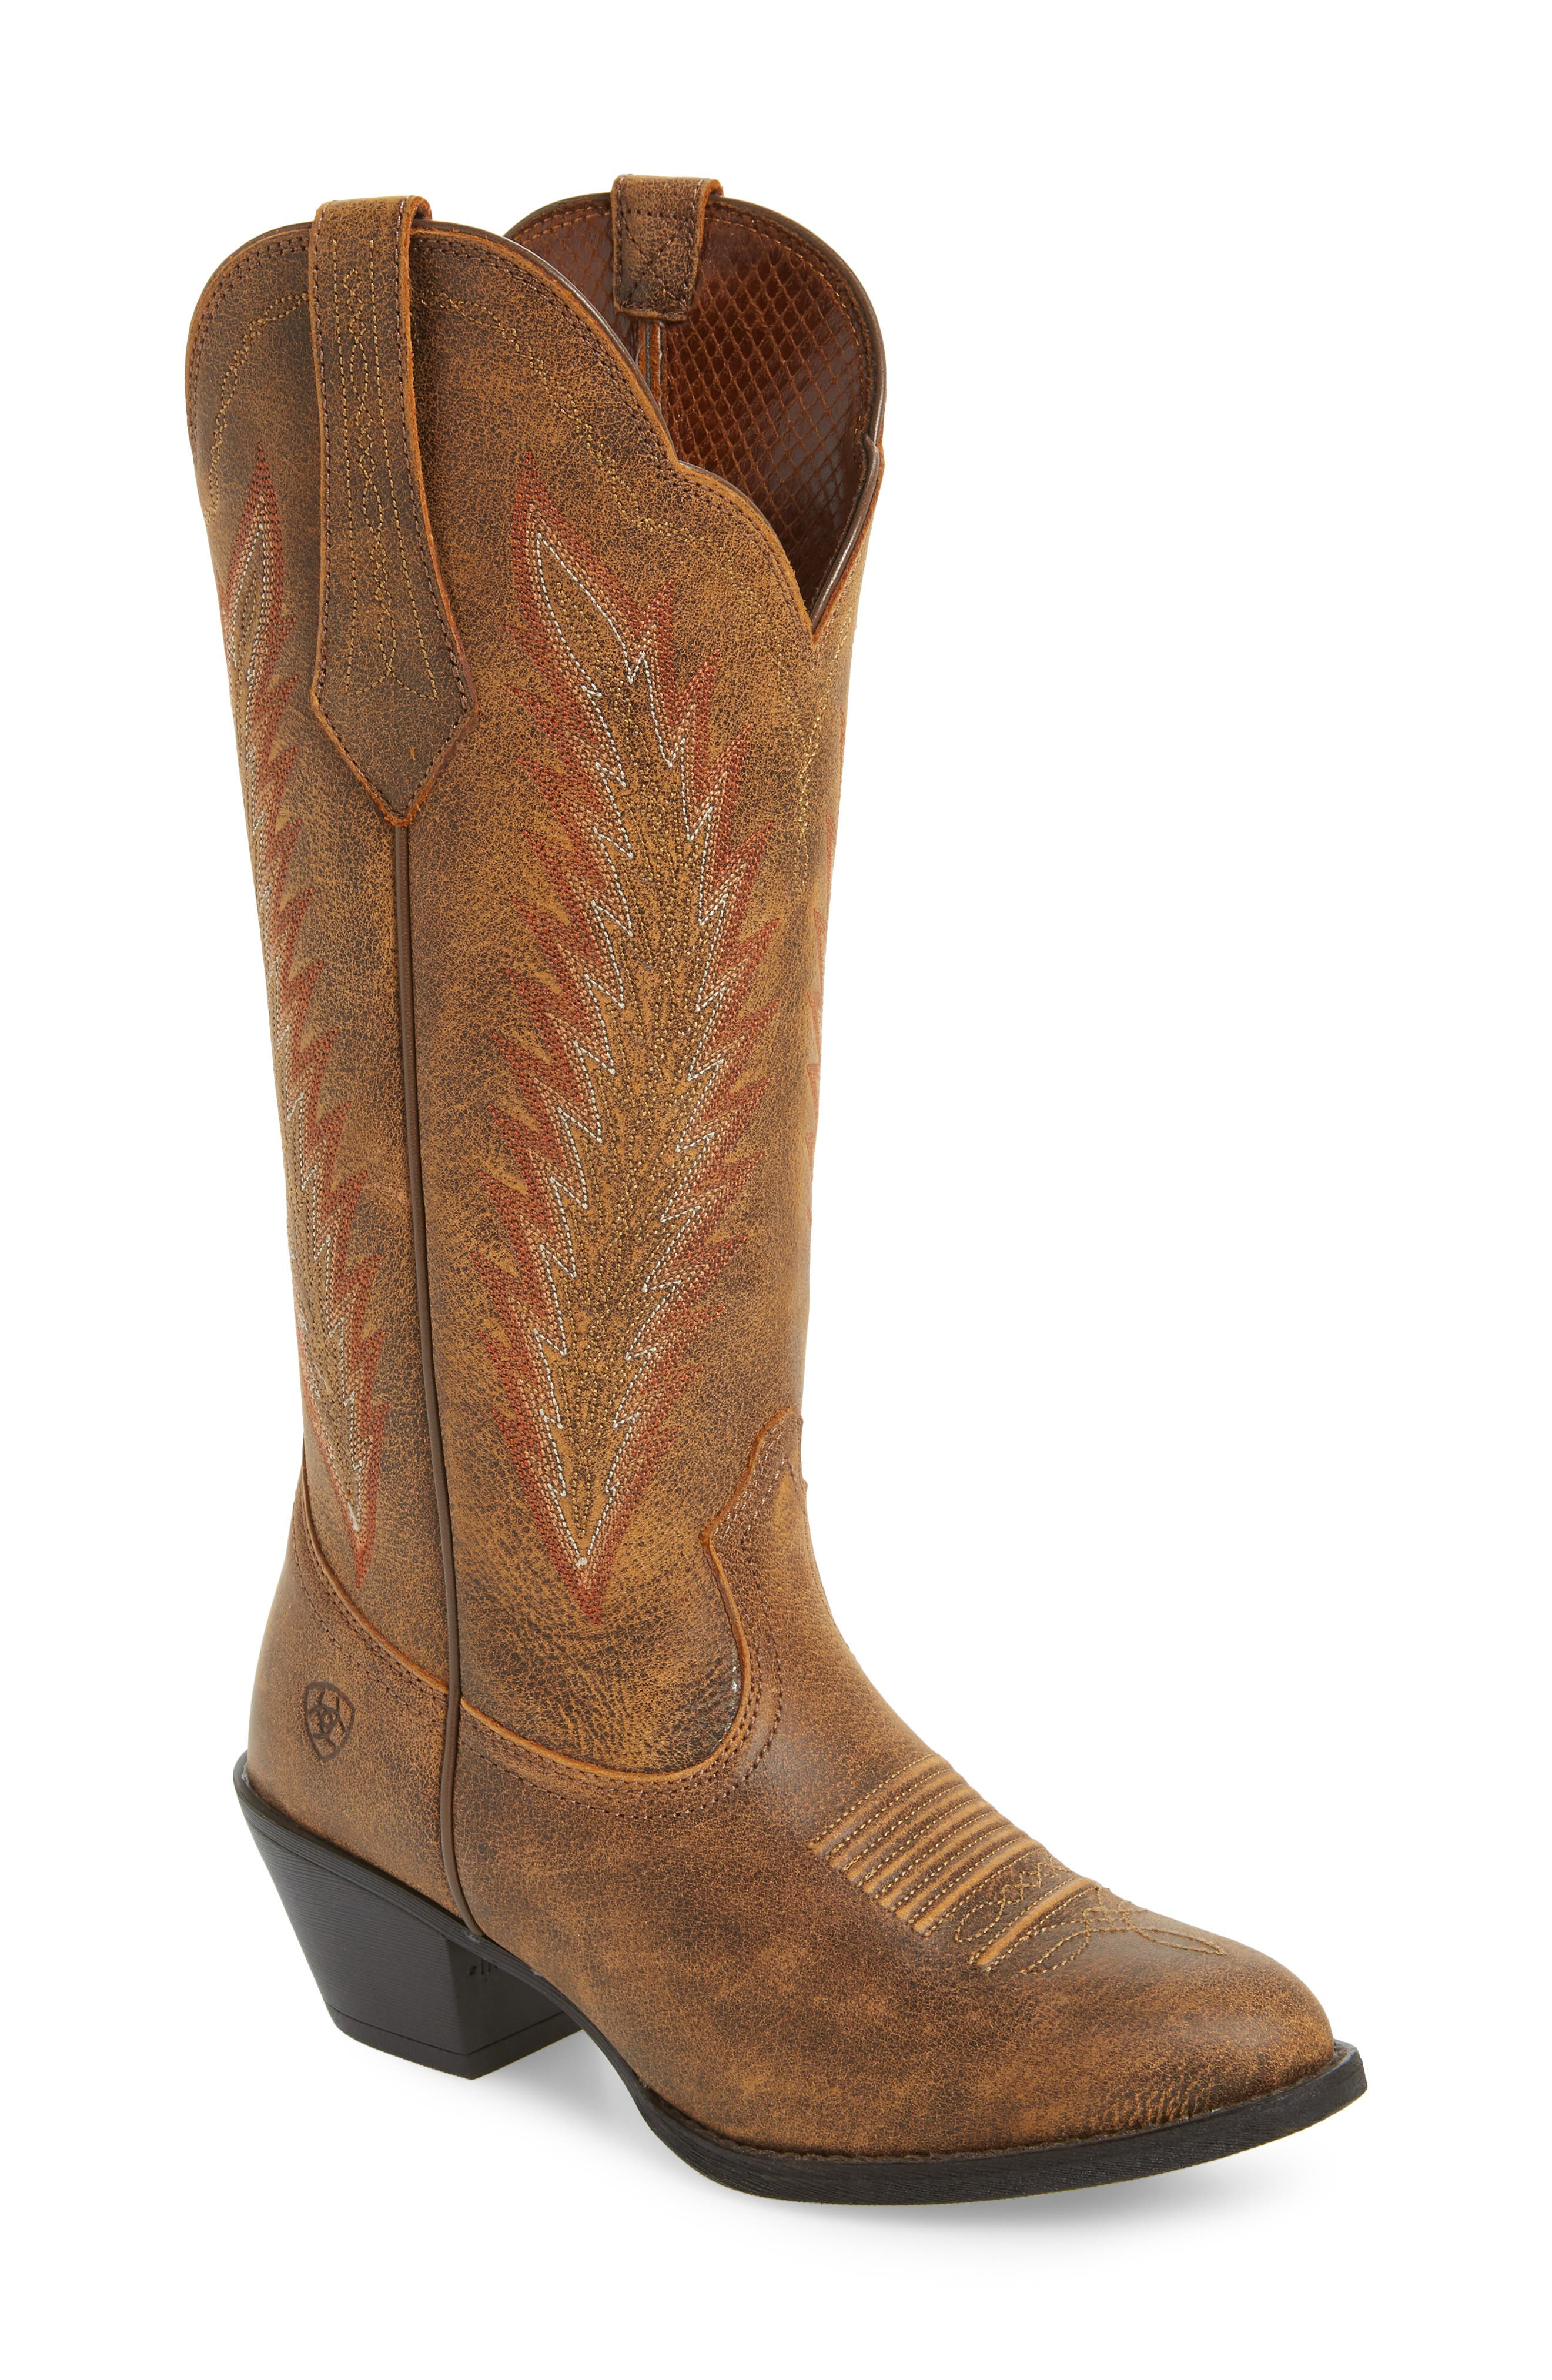 Desert Sky Western Boot,                         Main,                         color, Vintage Bomber Leather